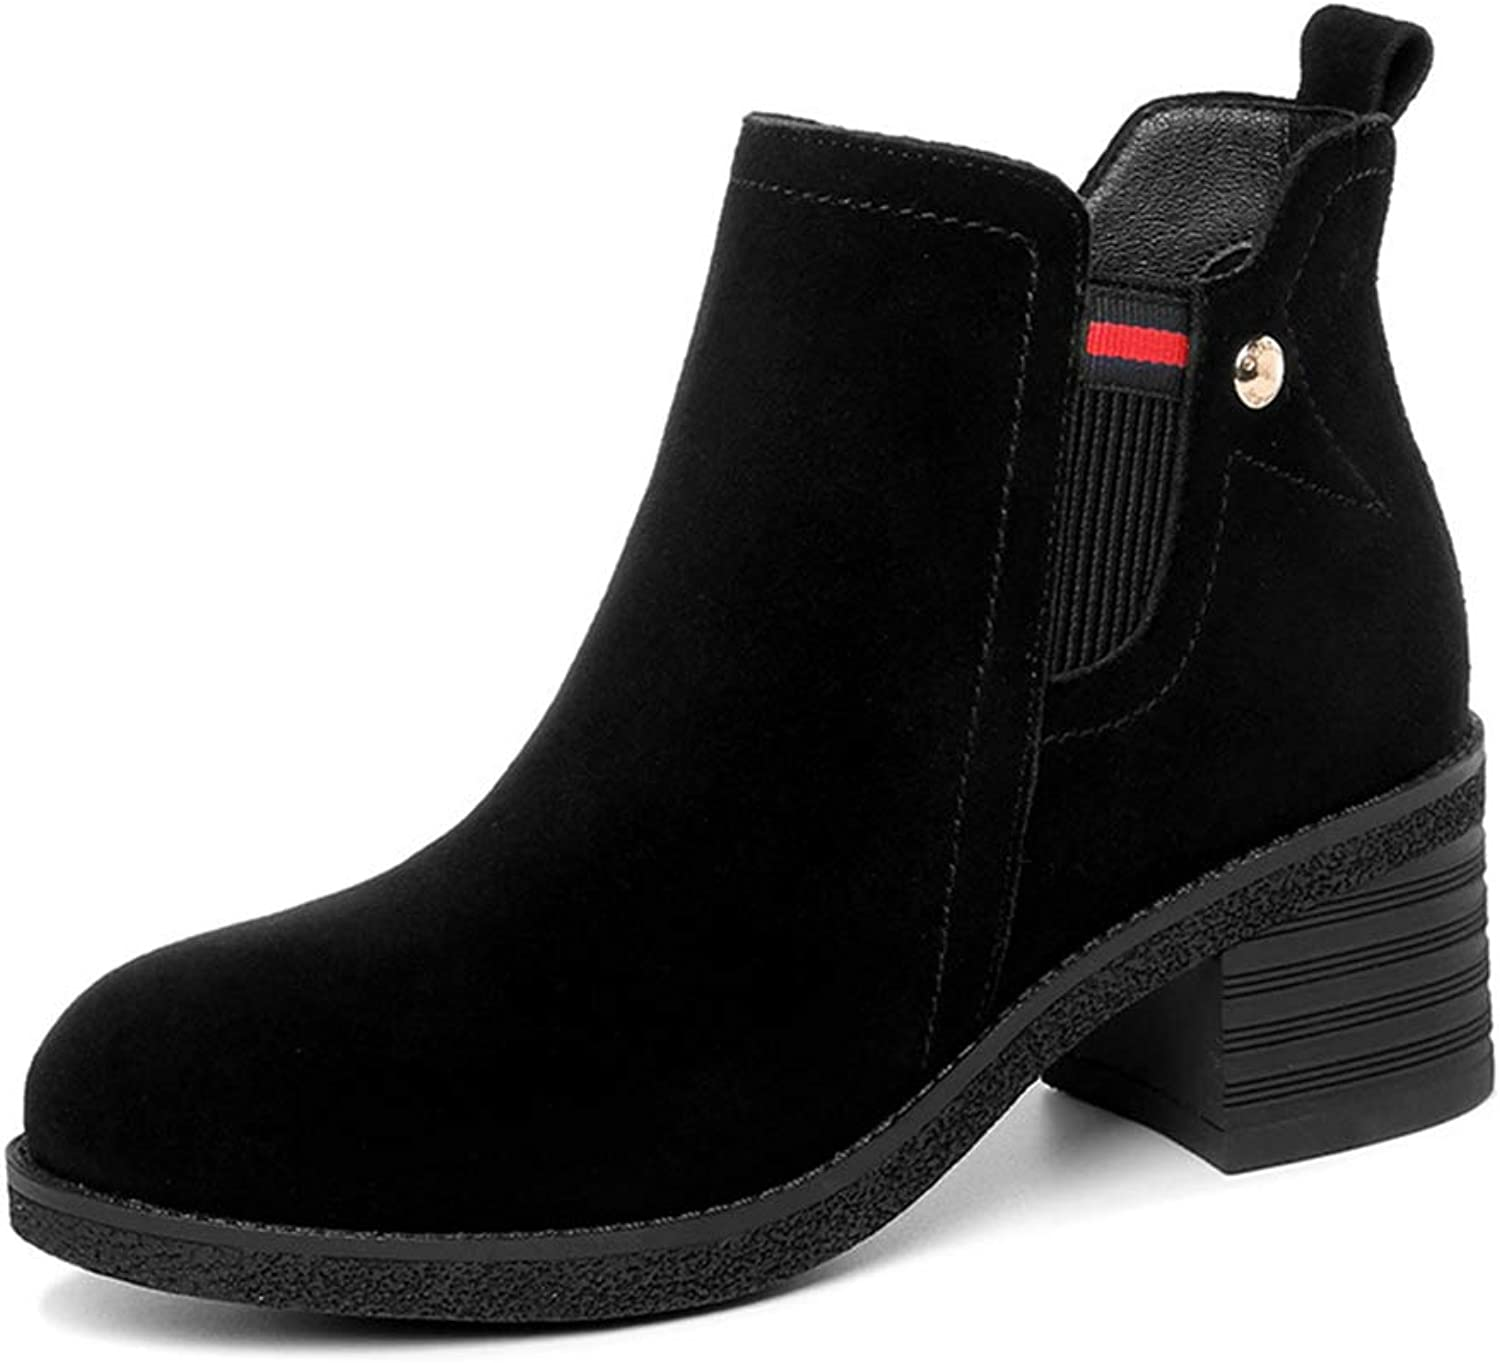 Ladies Booties, High Heel Plus Velvet Leather Thick Heel Fashion Boots Women's Fall Winter Ankle Boots (color   B, Size   36)